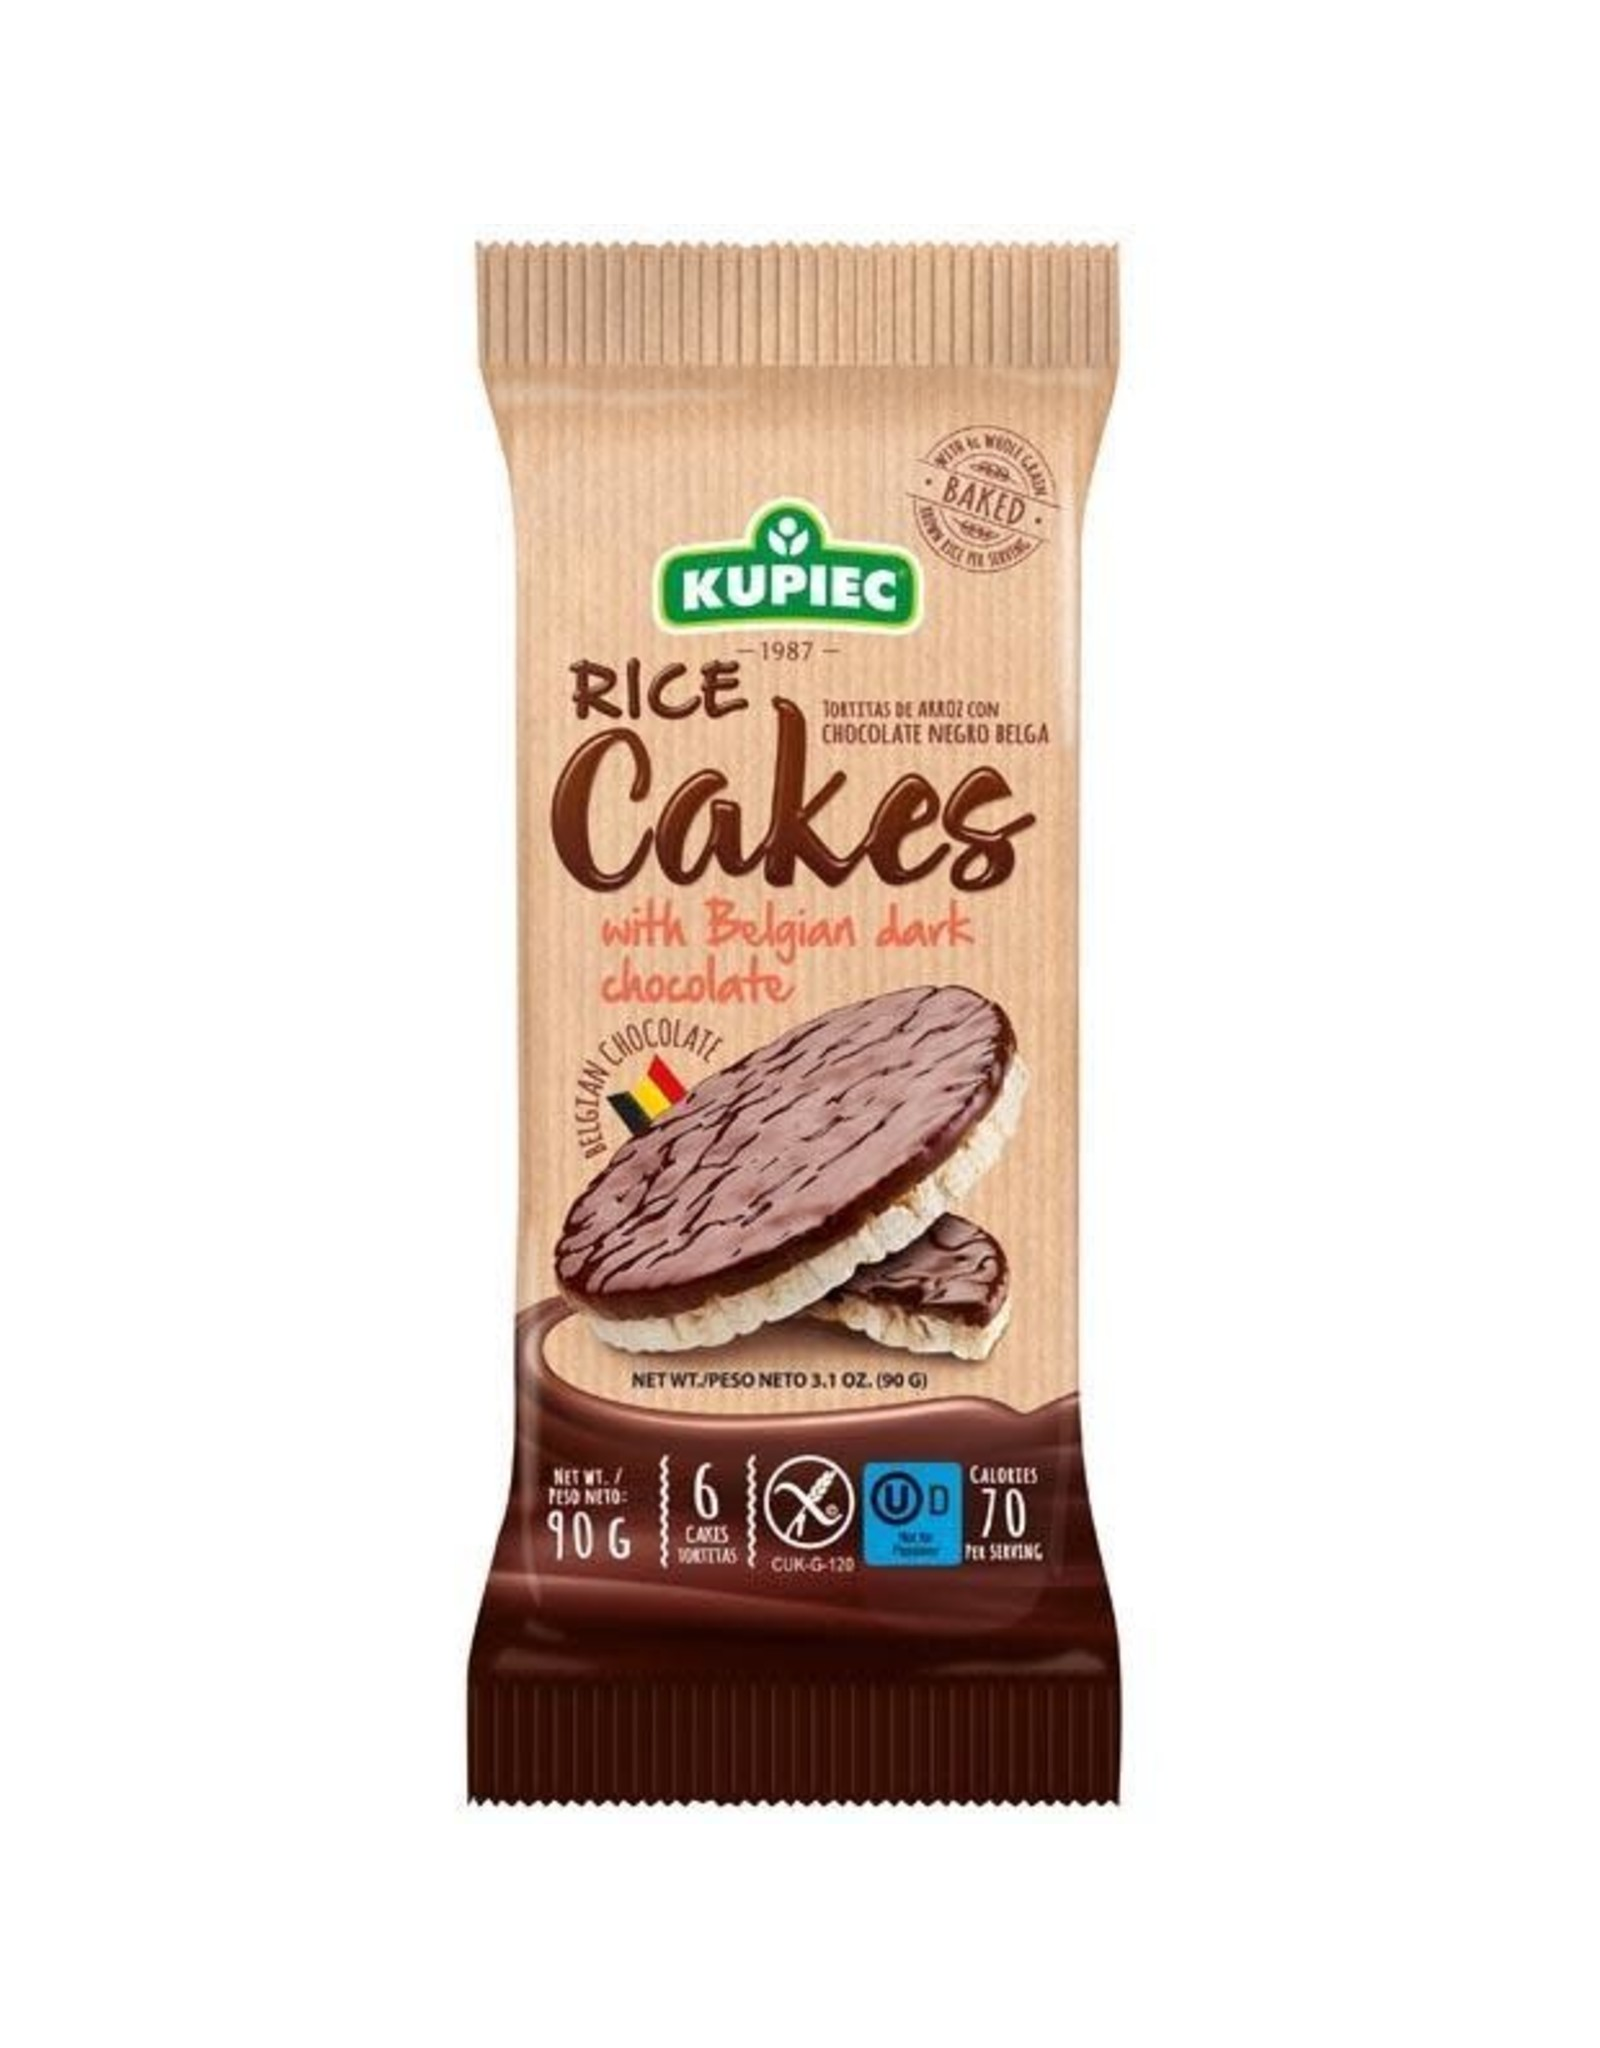 Kupiec Rice Cakes with Dark Chocolate - 90g